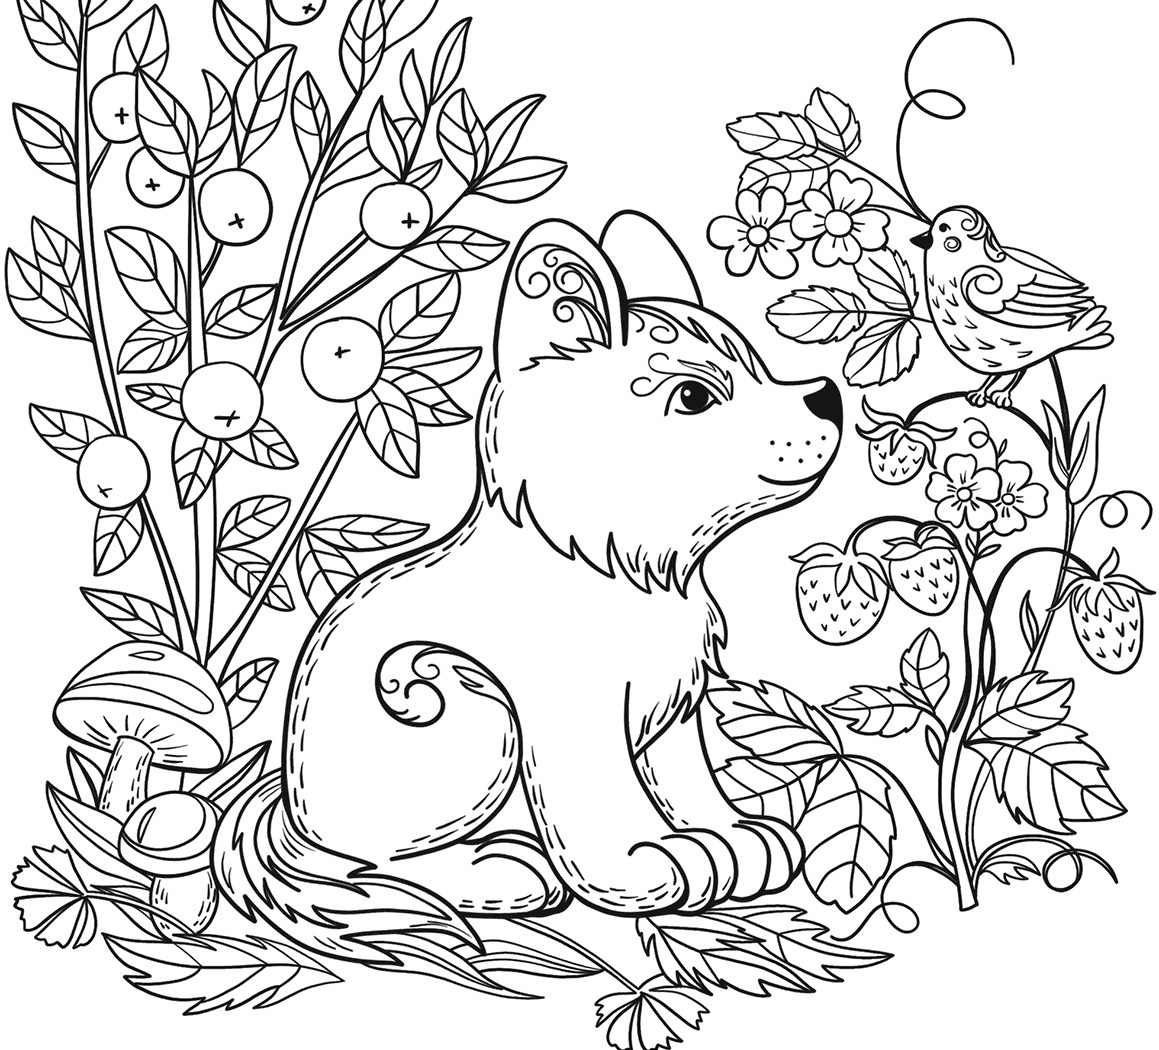 wild animals coloring pages wolf wild animals coloring pages for kids printable free wild coloring pages animals